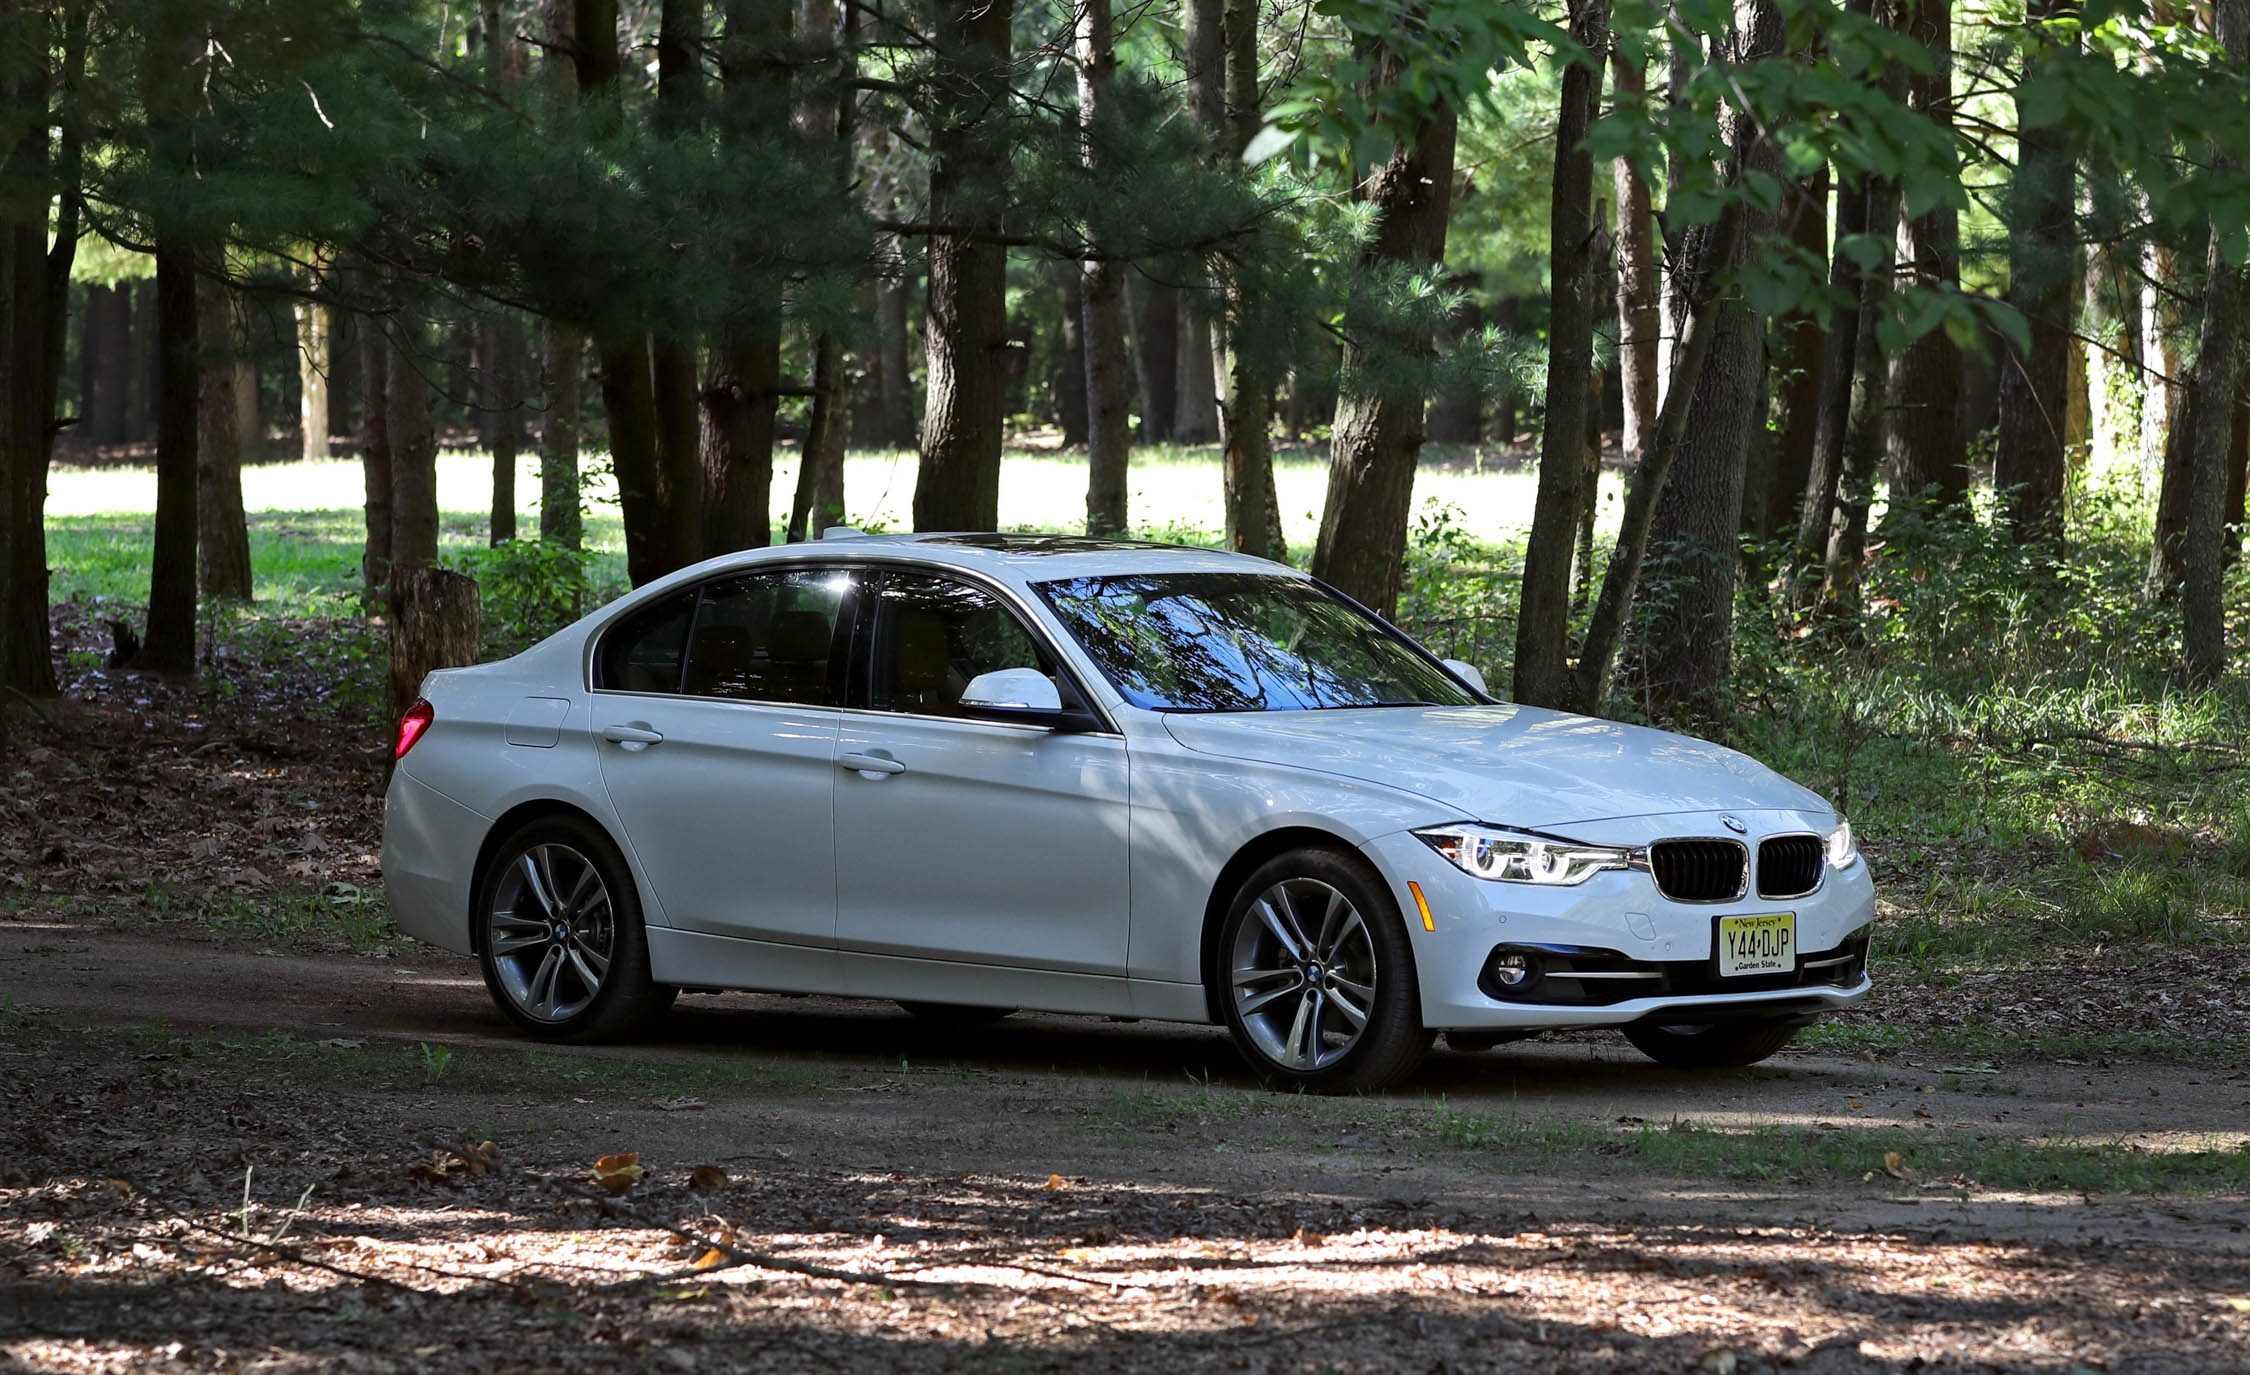 2017 BMW 330i Exterior White Metallic (View 8 of 59)